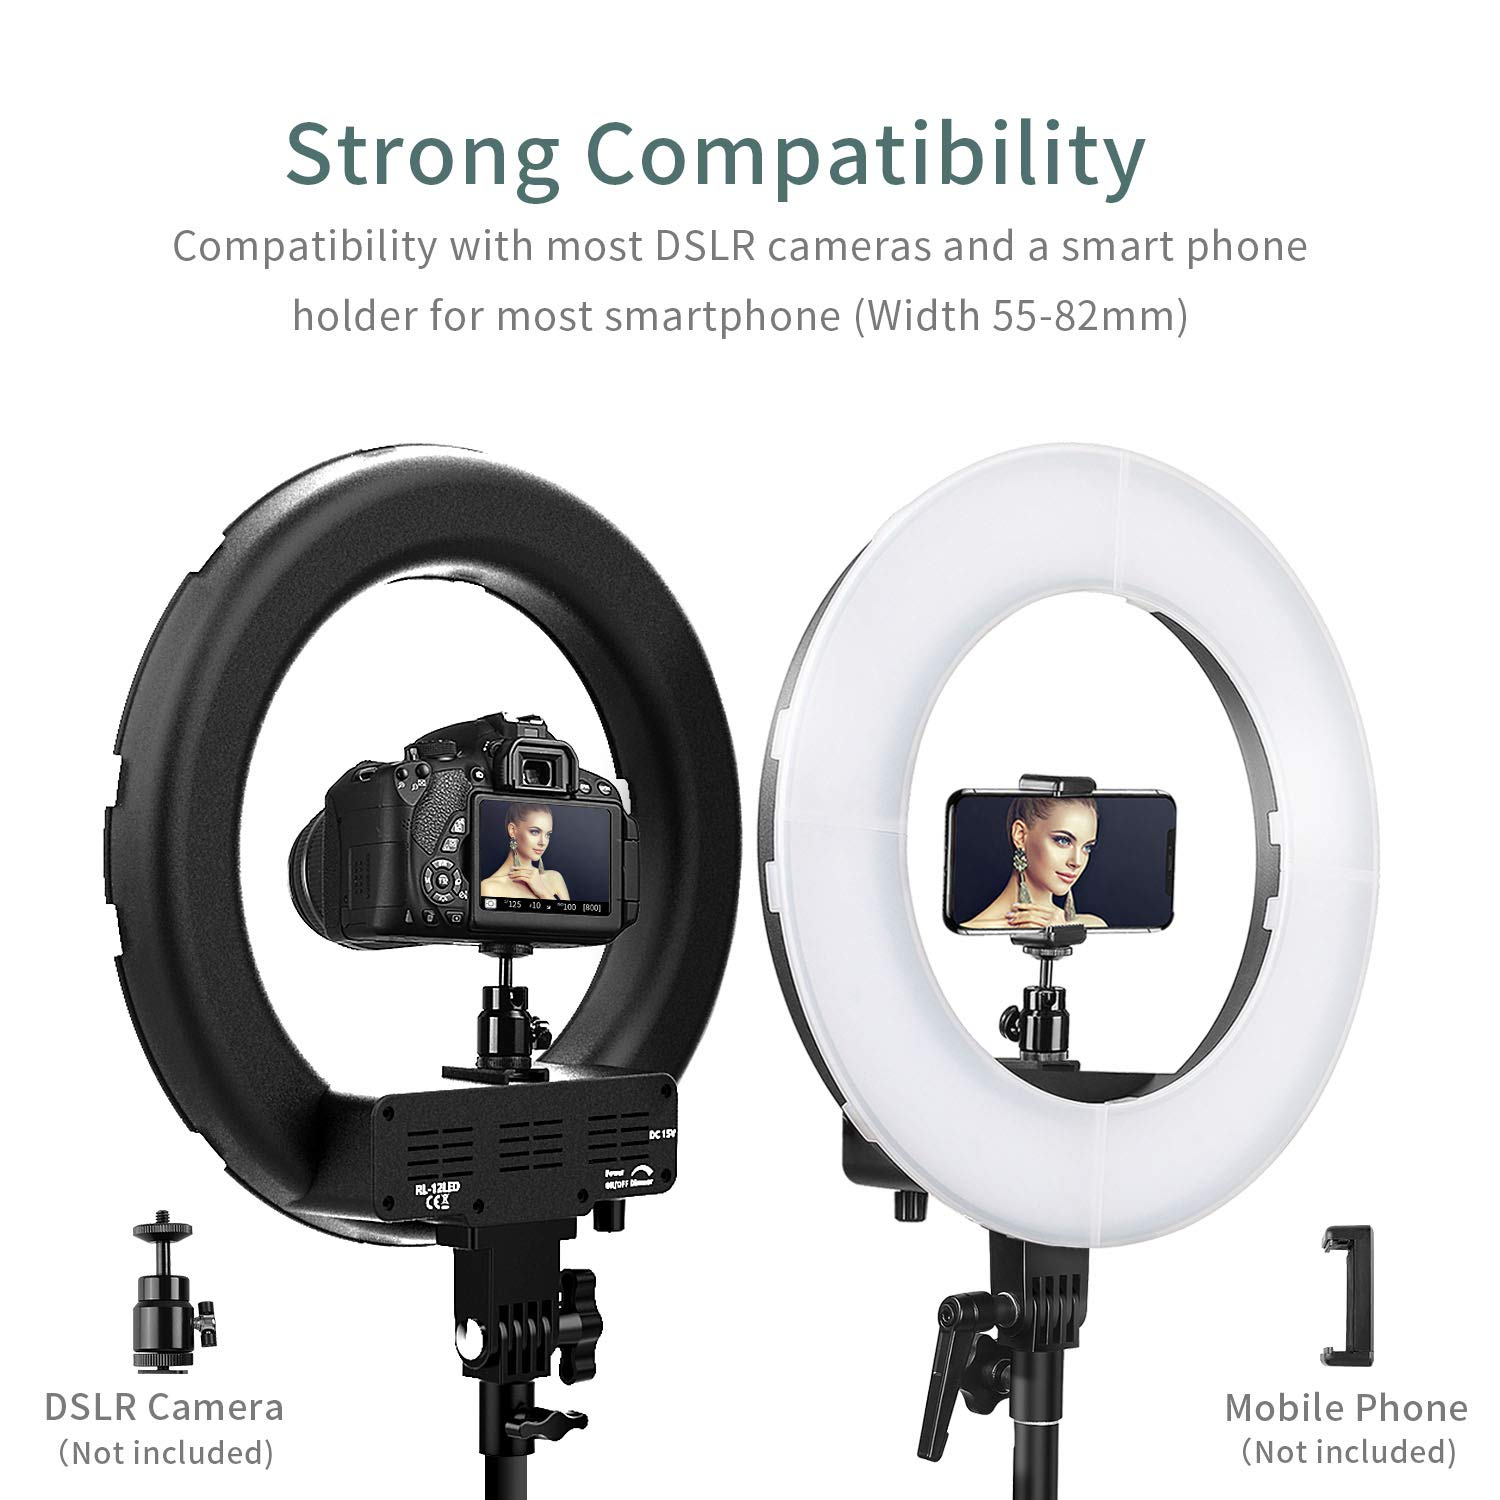 42W 5500K 180 LED Dimmable Camera Photo Video Lighting kit FOSITAN 14-inch Ring Light Kit 2M Adjustable Light Stand Bluetooth Receiver for Smartphone Youtube Video Shooting